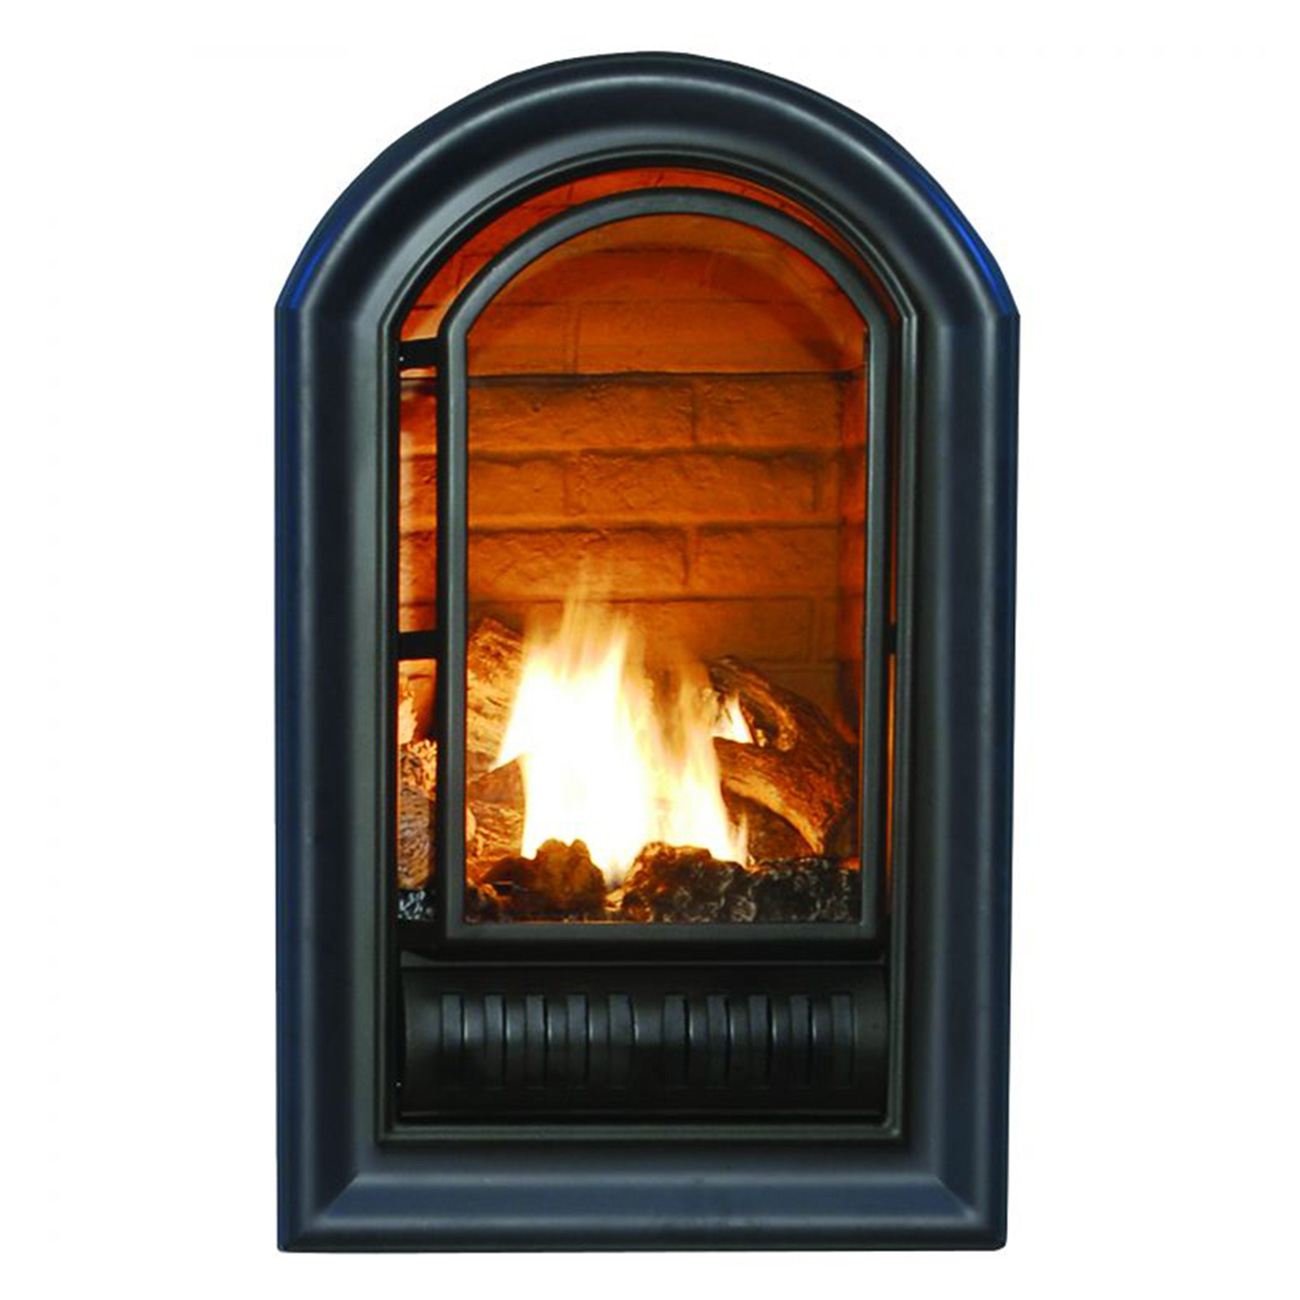 Ventless Fireplace: HearthSense Dual Fuel Ventless Fireplace, 15,000 BTU's